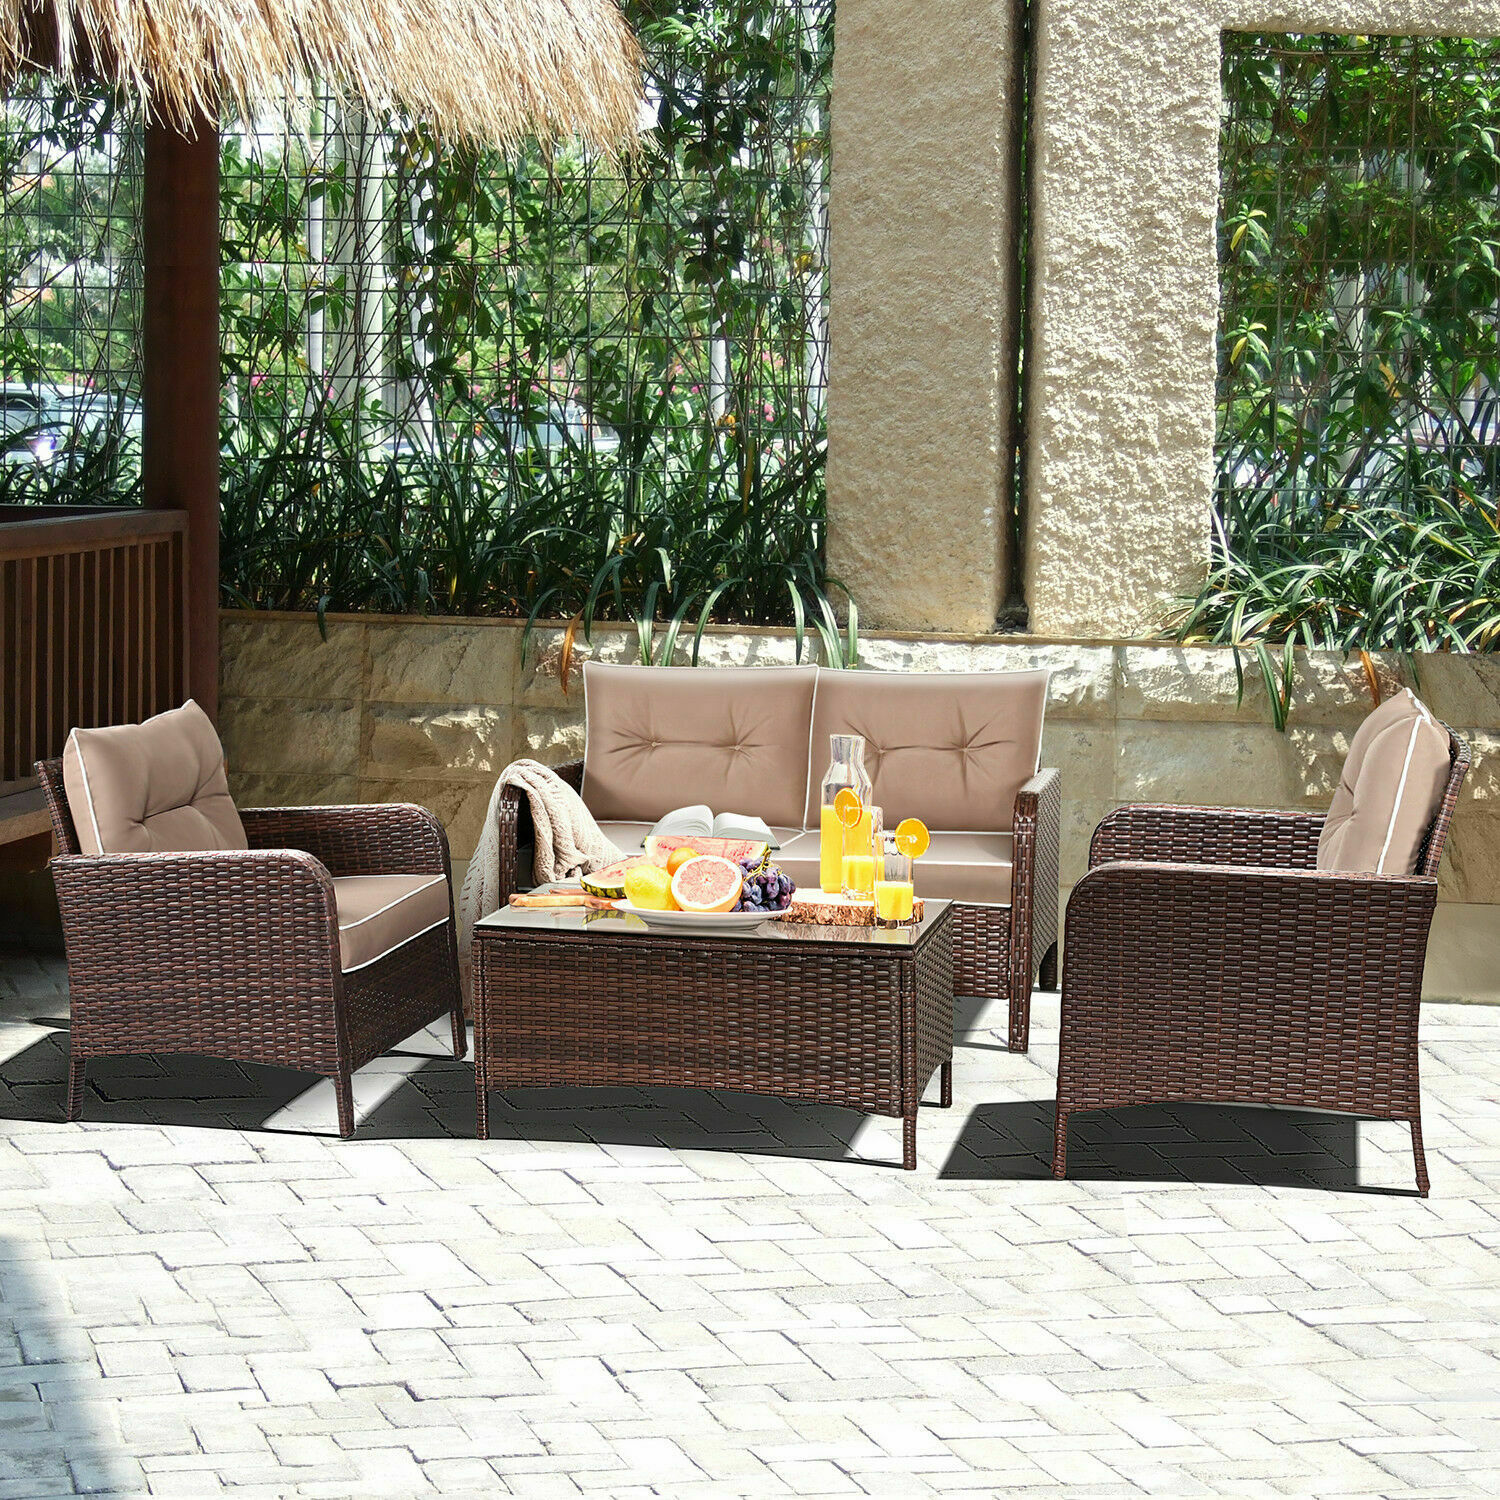 Costway 4 Pcs Outdoor Patio Rattan Wicker Furniture Set Sofa Loveseat W Cushions